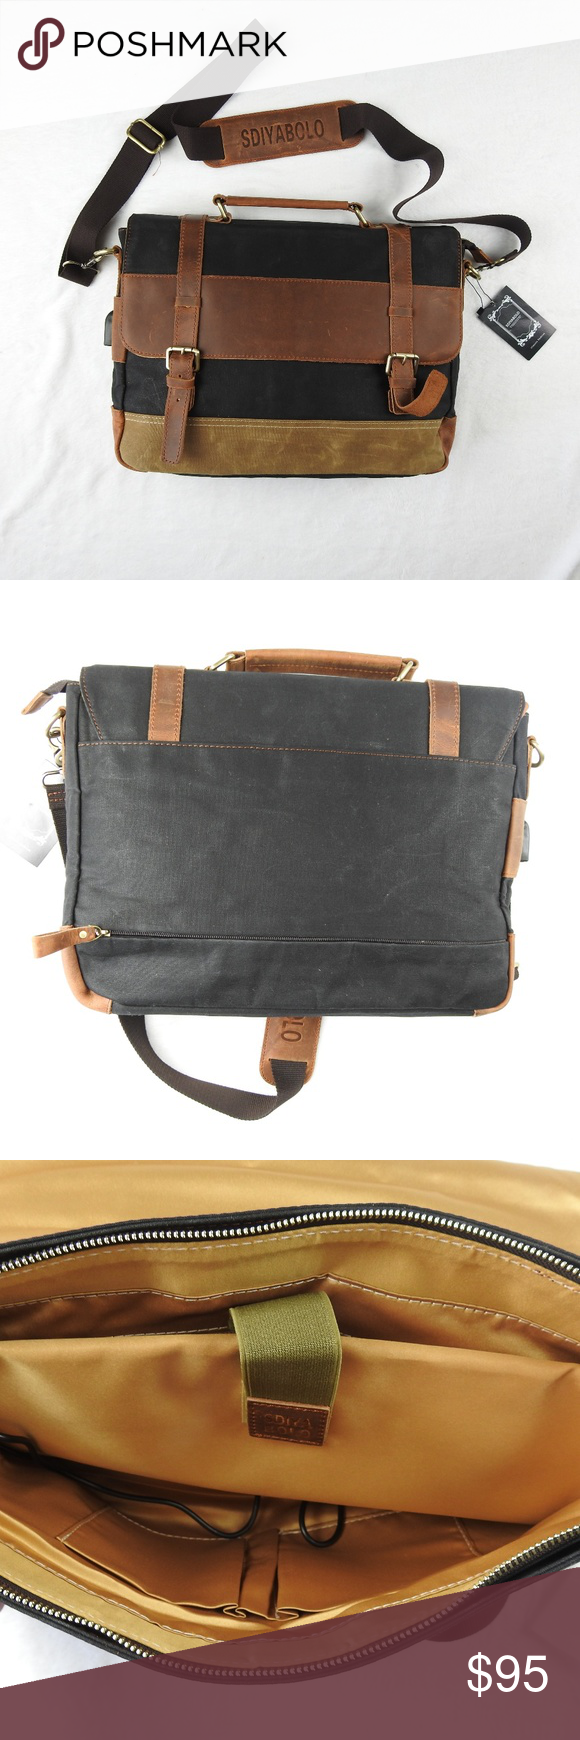 eeb36785e67 Messenger Laptop Bag Vintage Canvas Leather 15in Men s Messenger Bag  Vintage Canvas Leather Military Shoulder Laptop